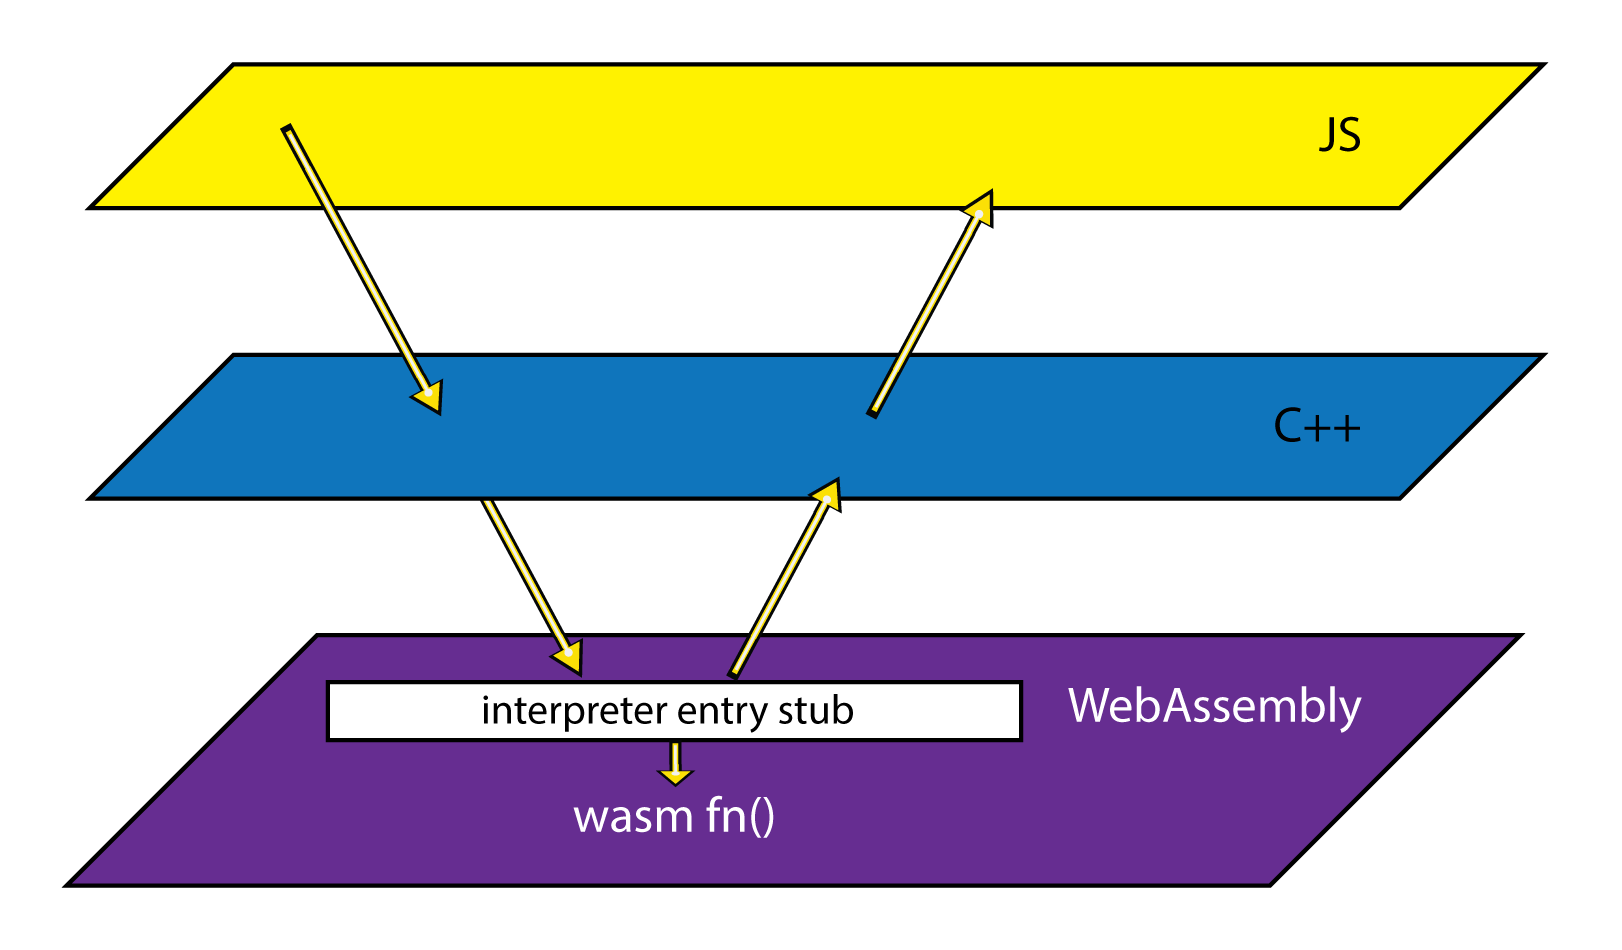 Diagram showing interpreter entry stub